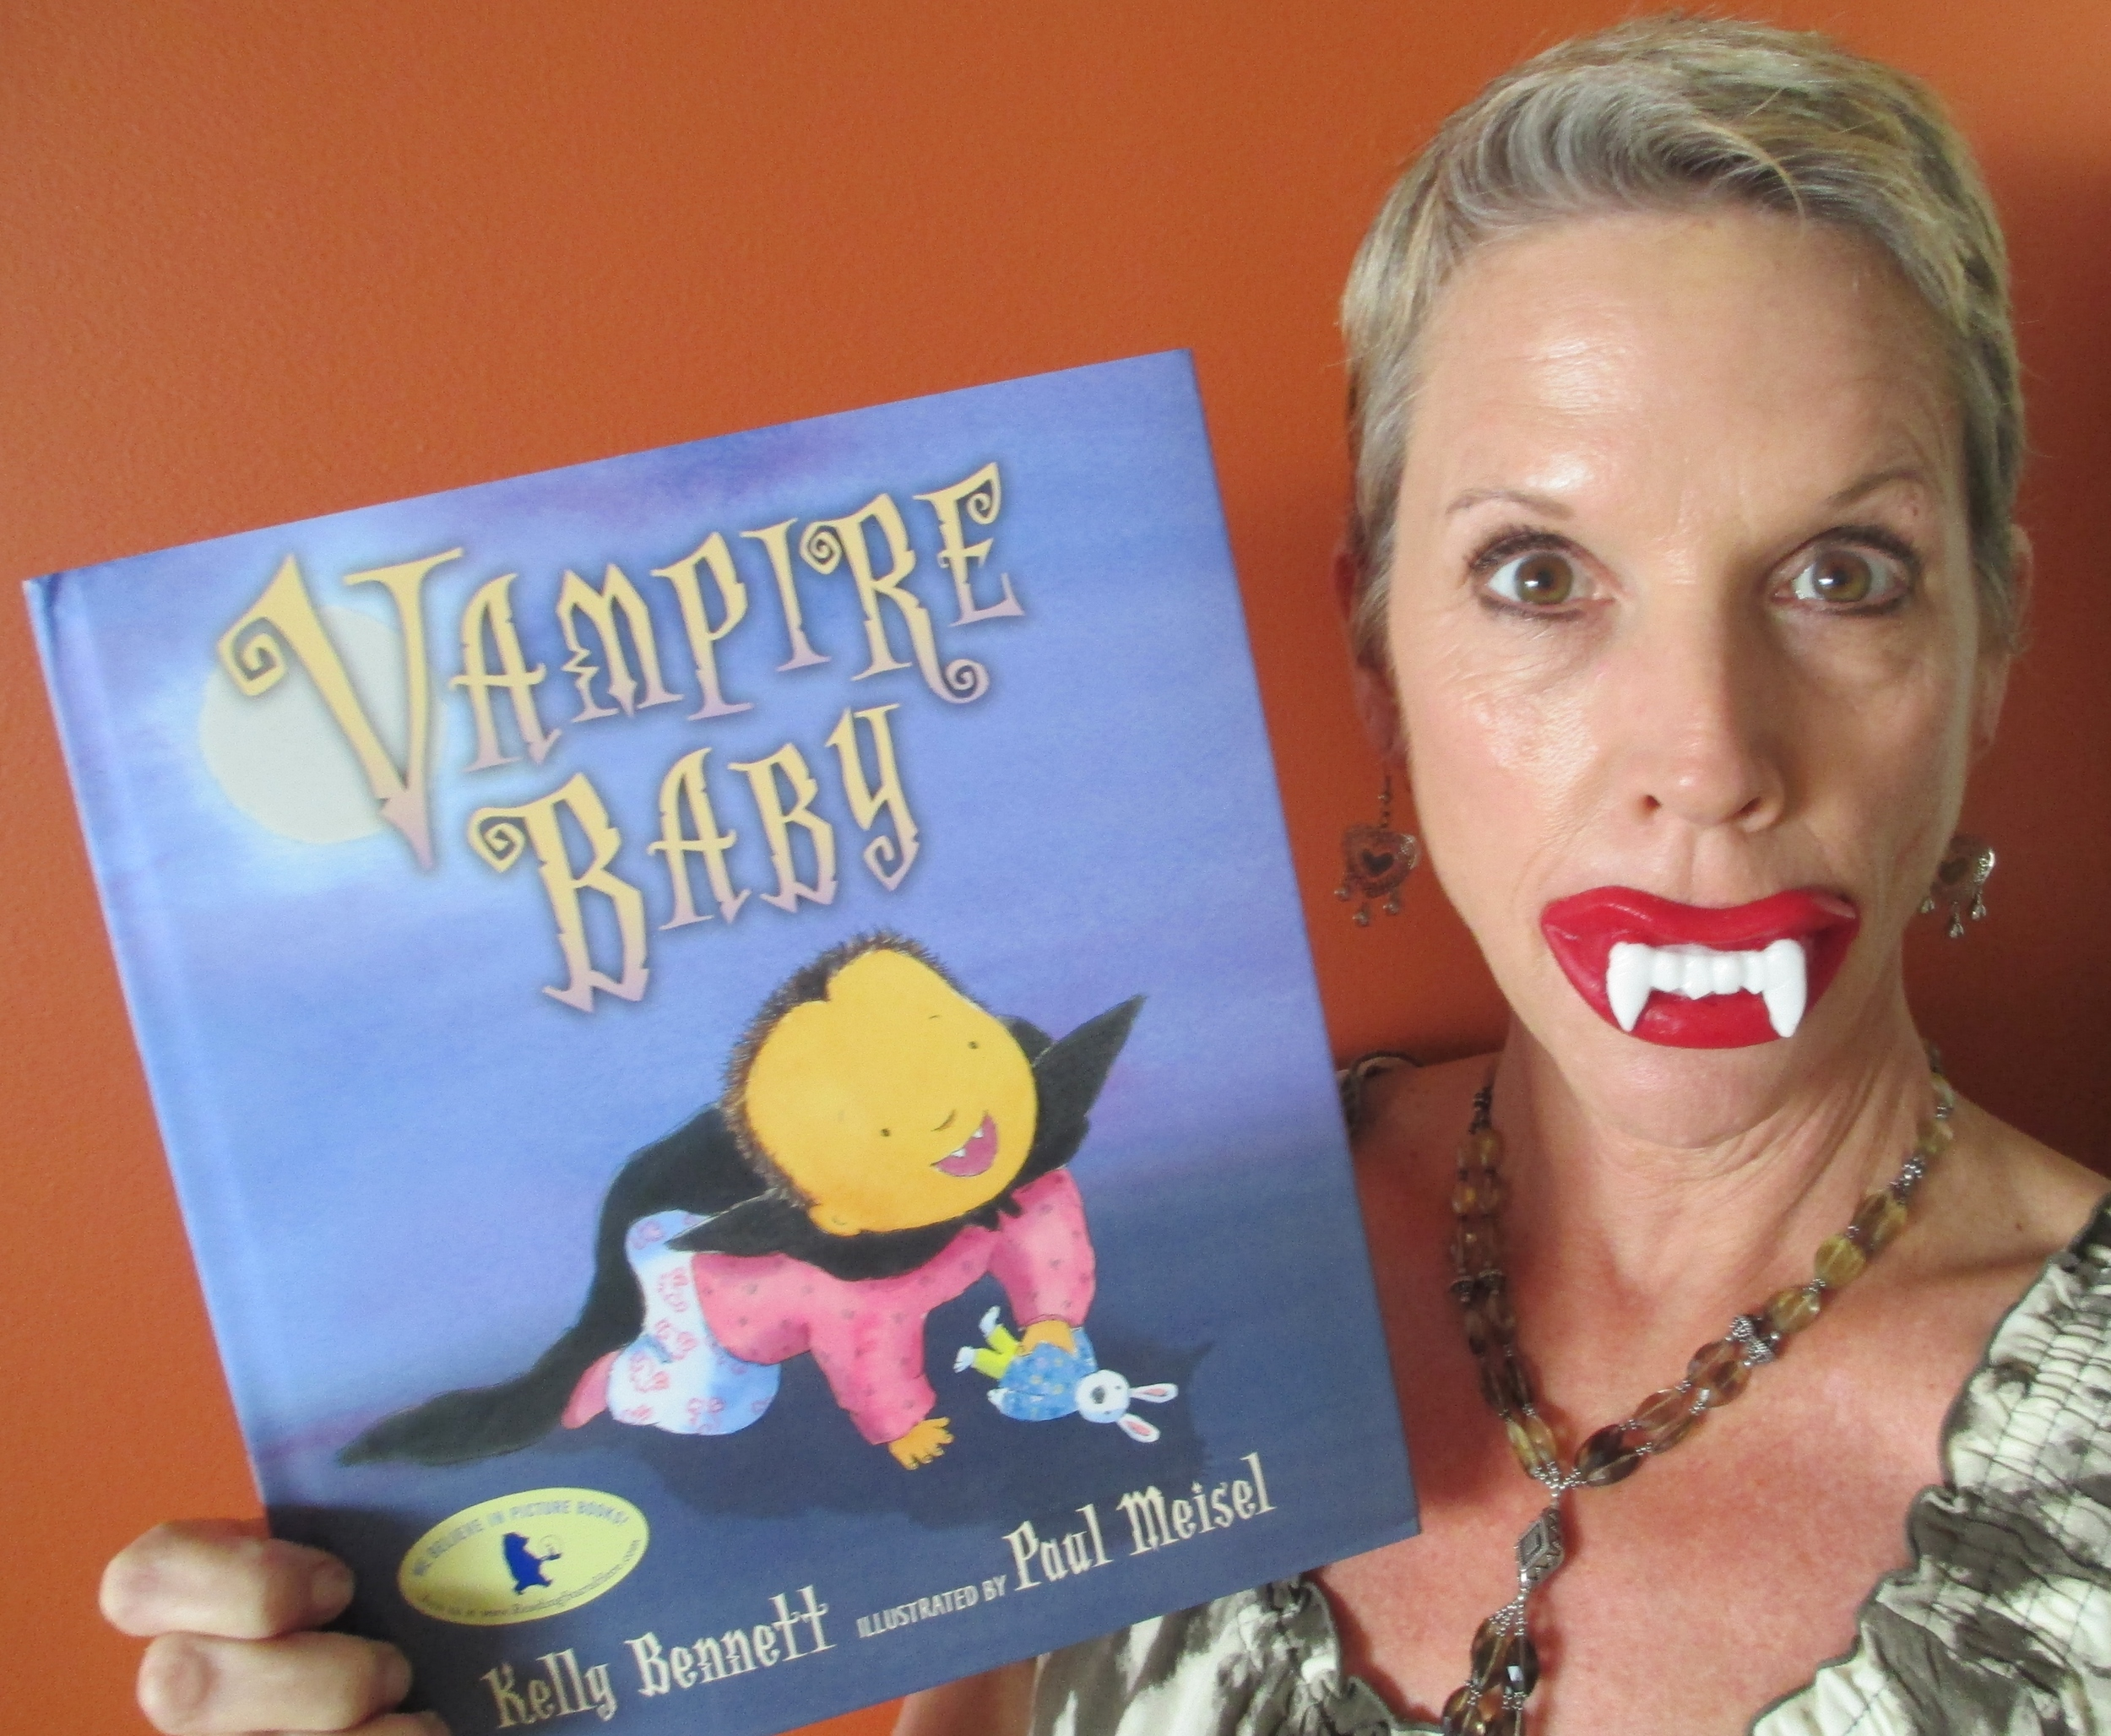 Who knows: I could go Vampire--I have the fangs for it!